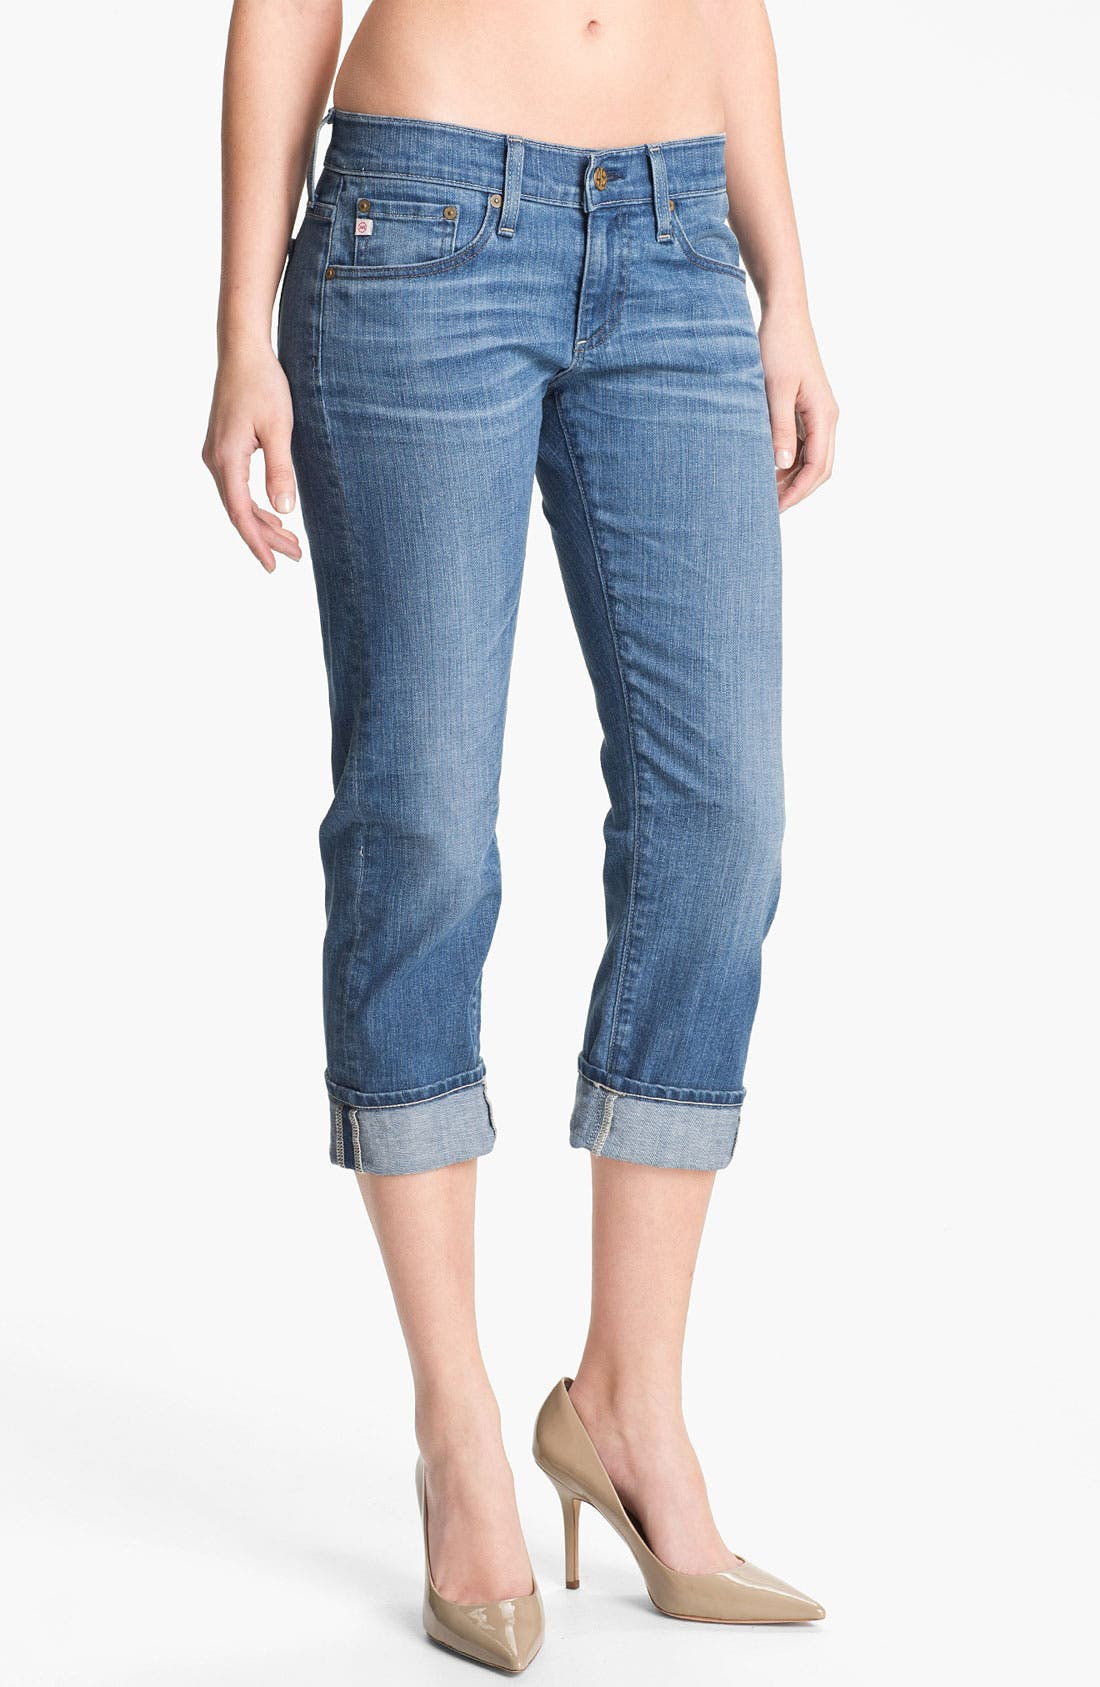 Alternate Image 1 Selected - AG Jeans 'Tomboy' Crop Stretch Jeans (17-Year)